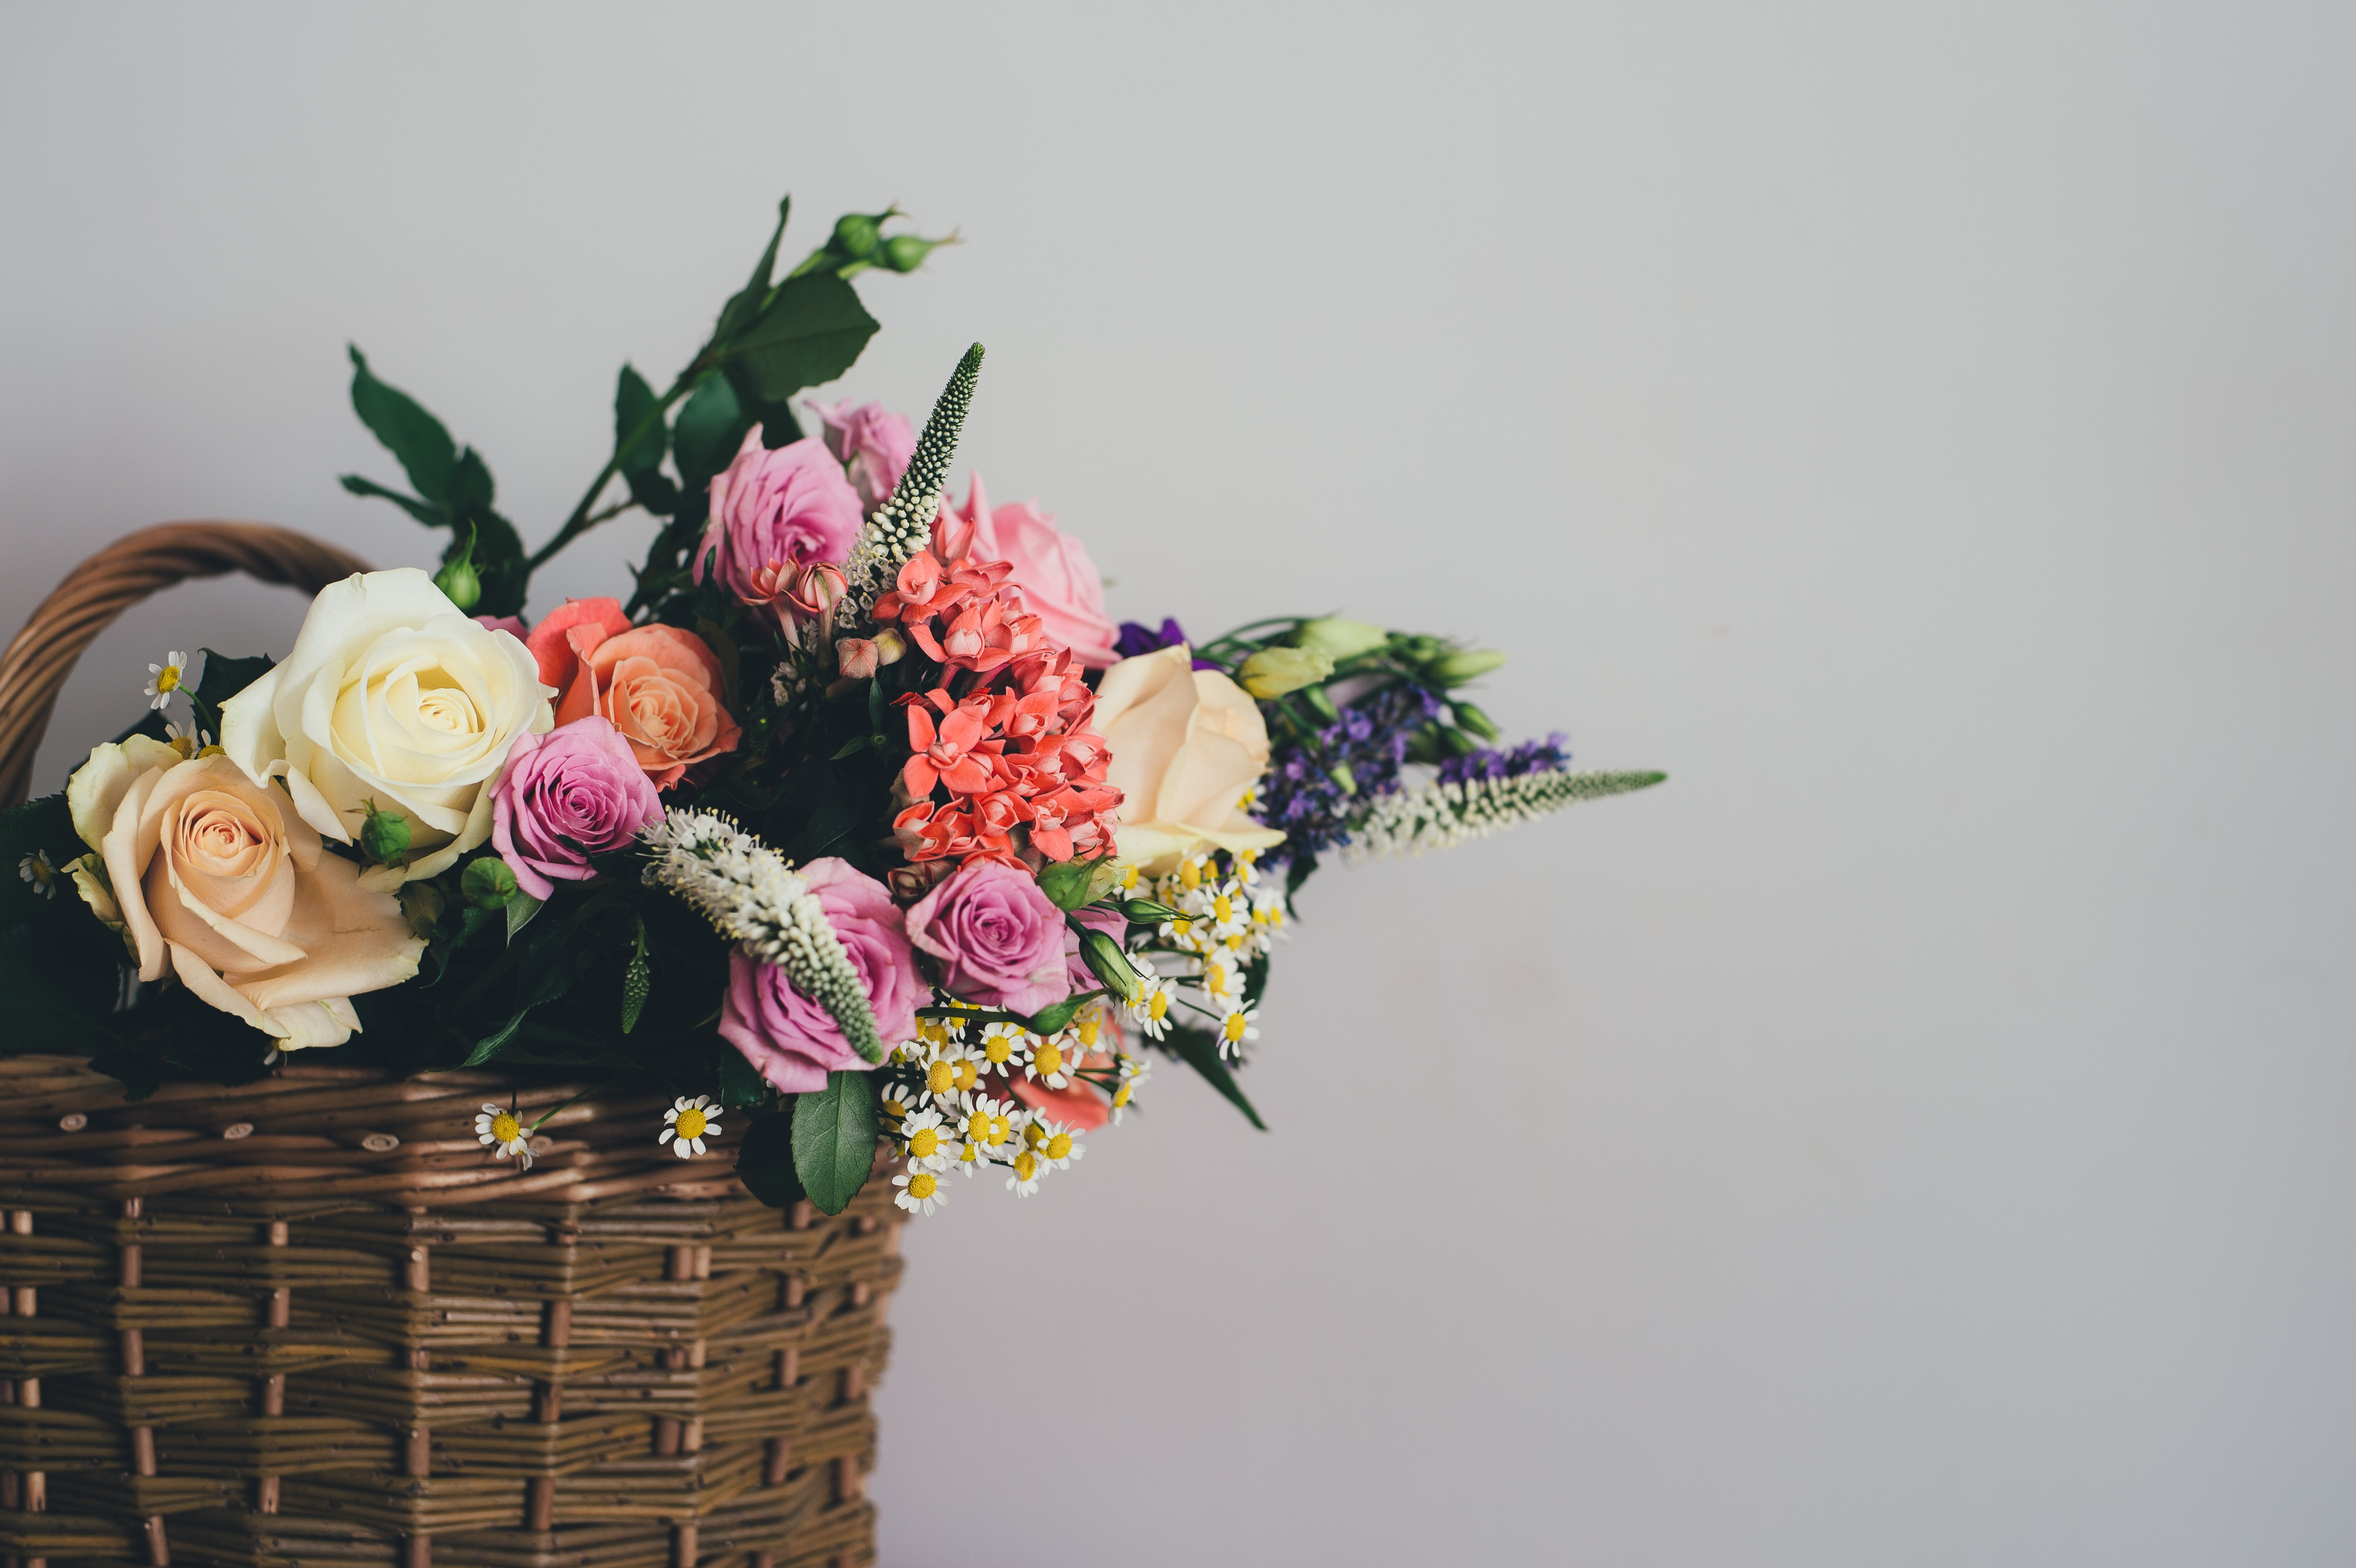 What Makes a Gift Basket the Perfect Mother's Day Gift